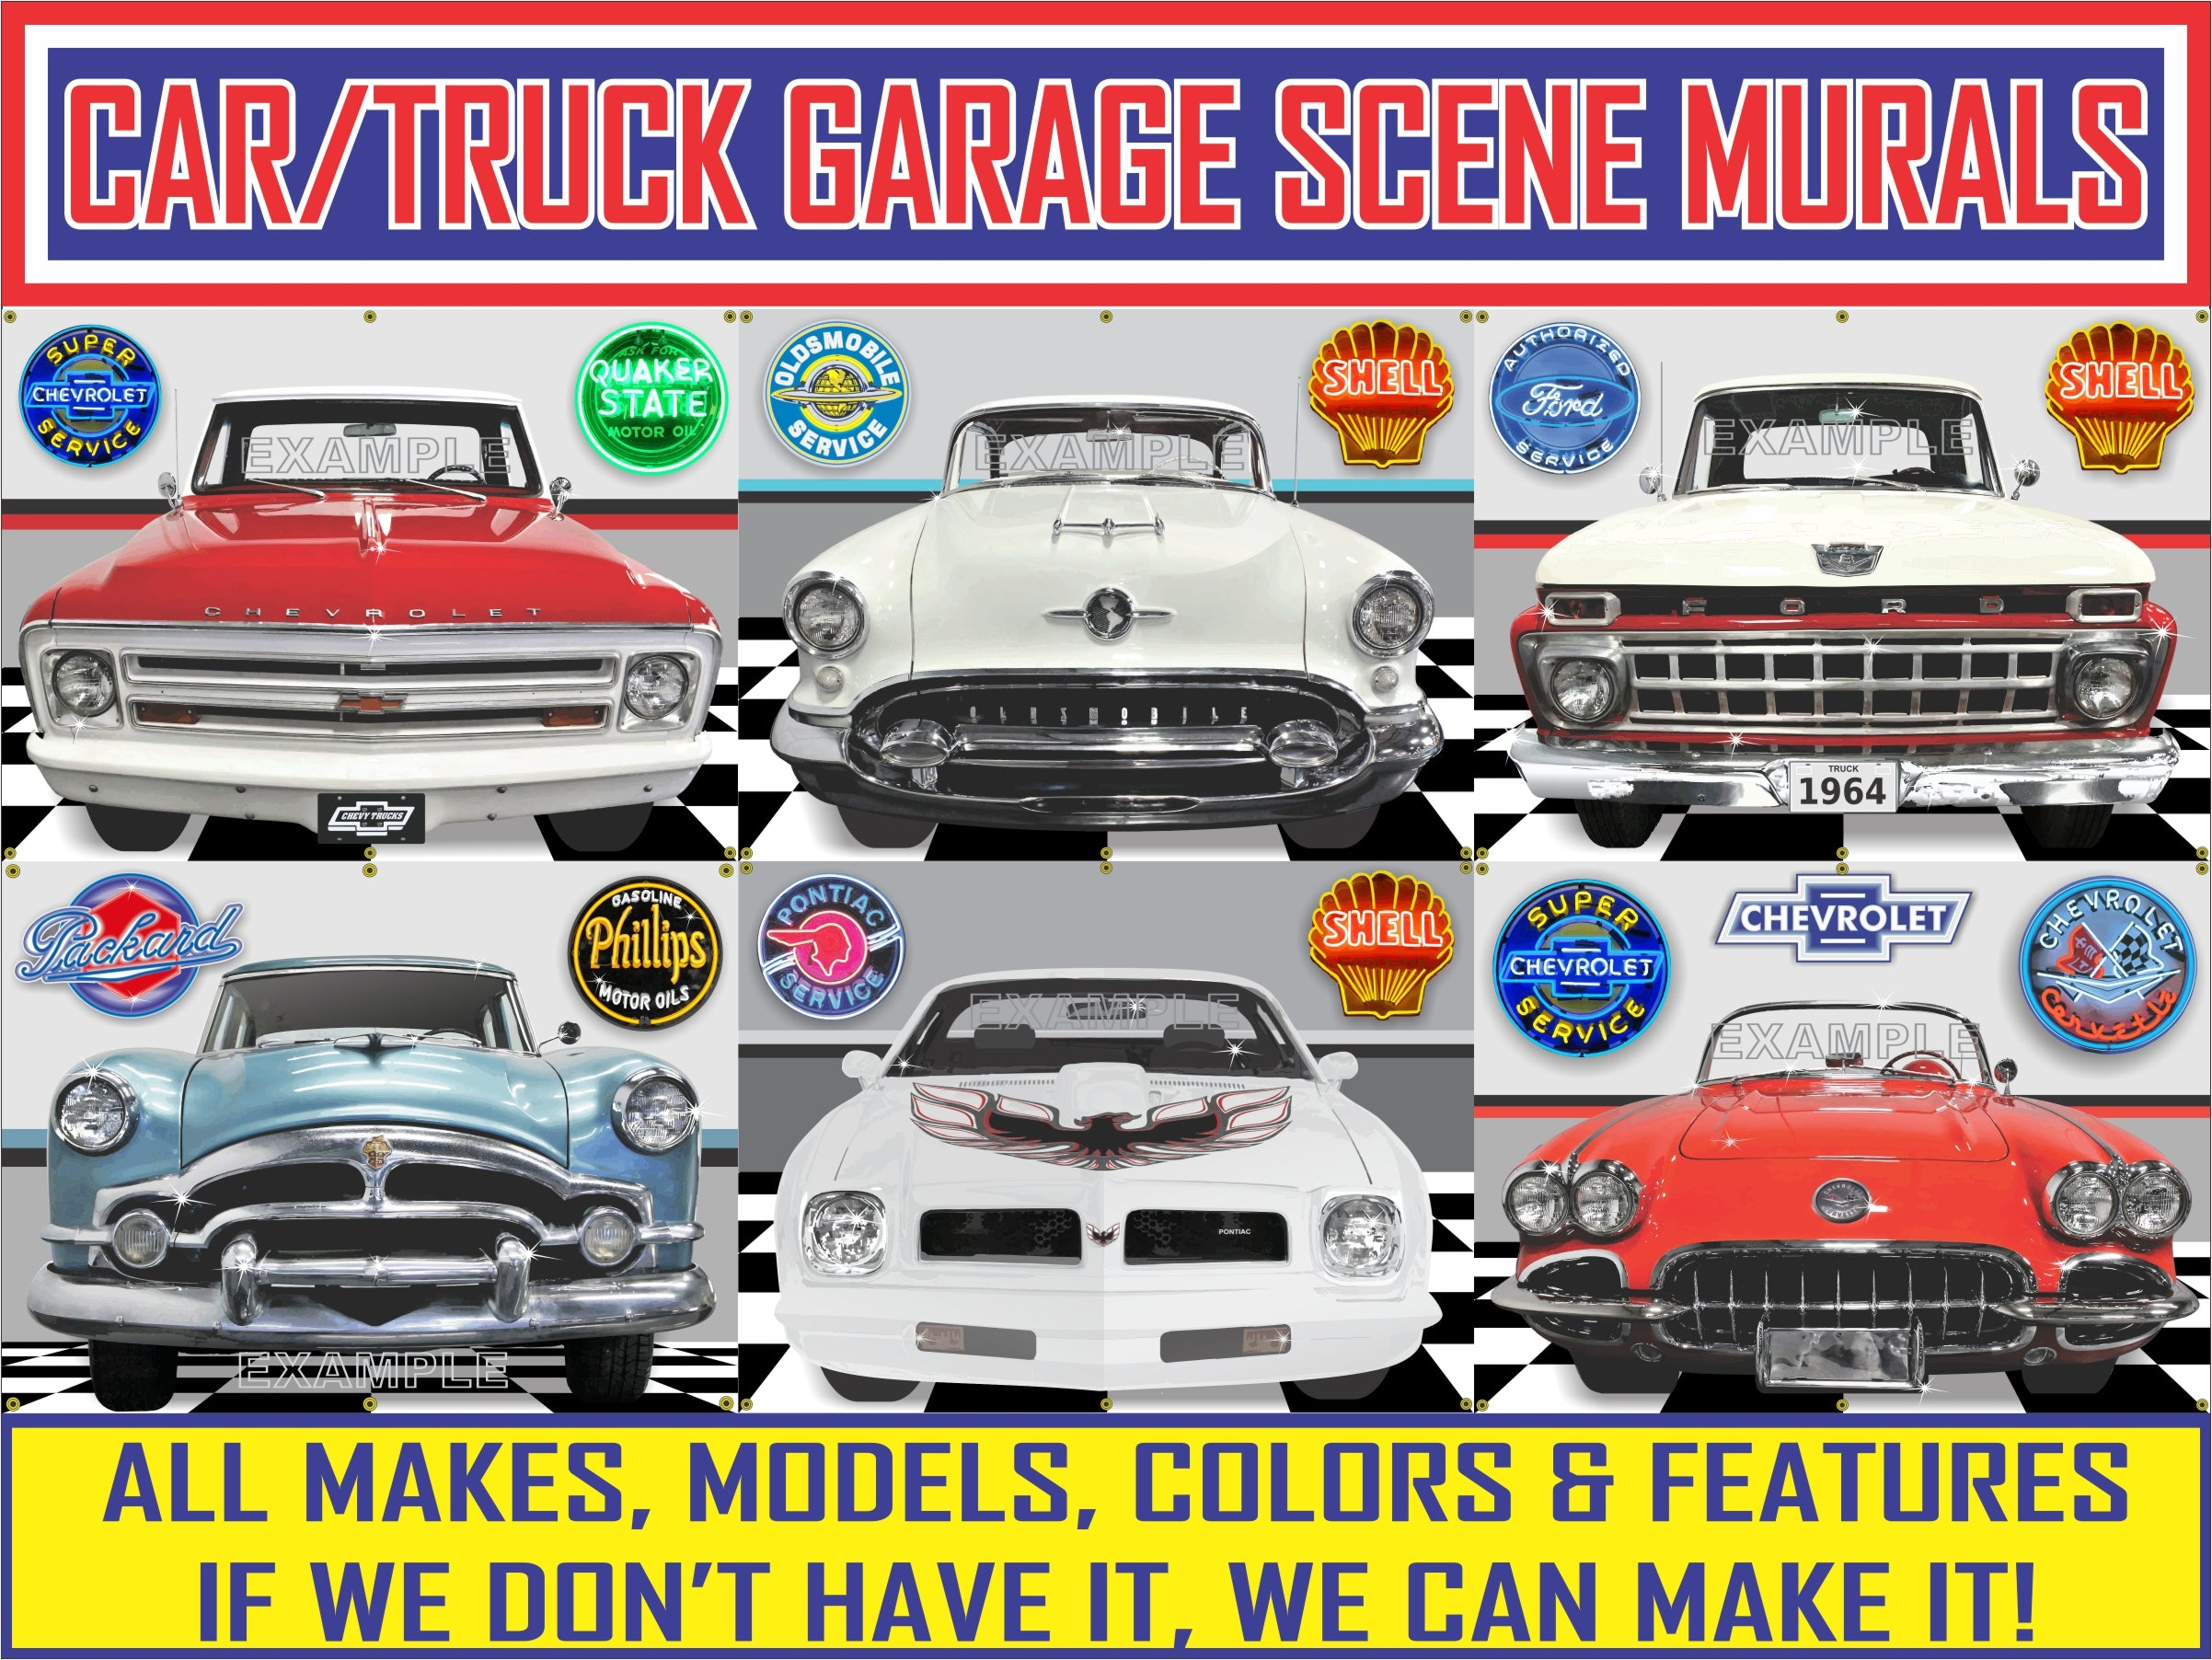 CAR/TRUCK GARAGE SCENE BANNERS